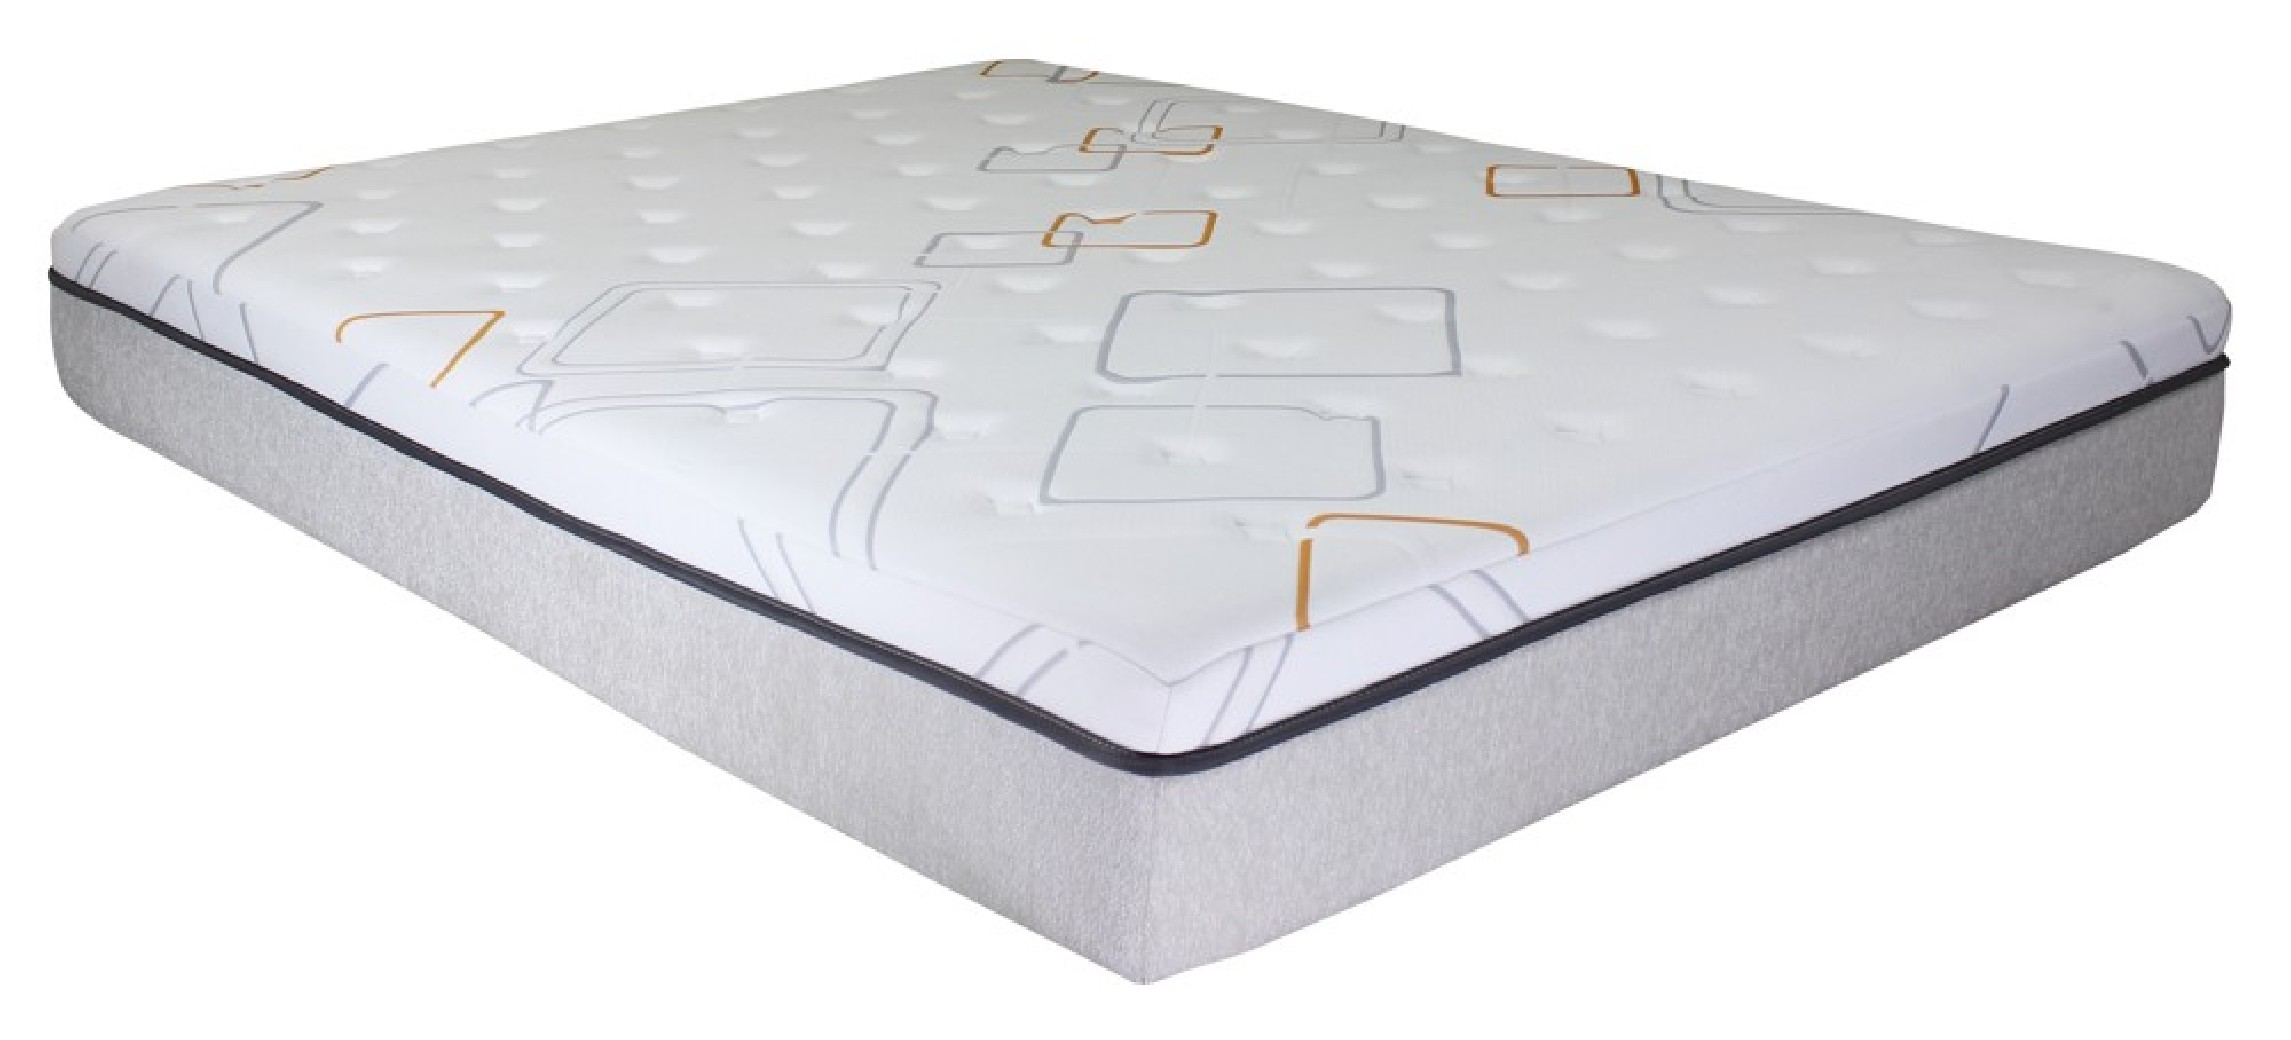 iRetreat Hybrid Mattress by BedTech